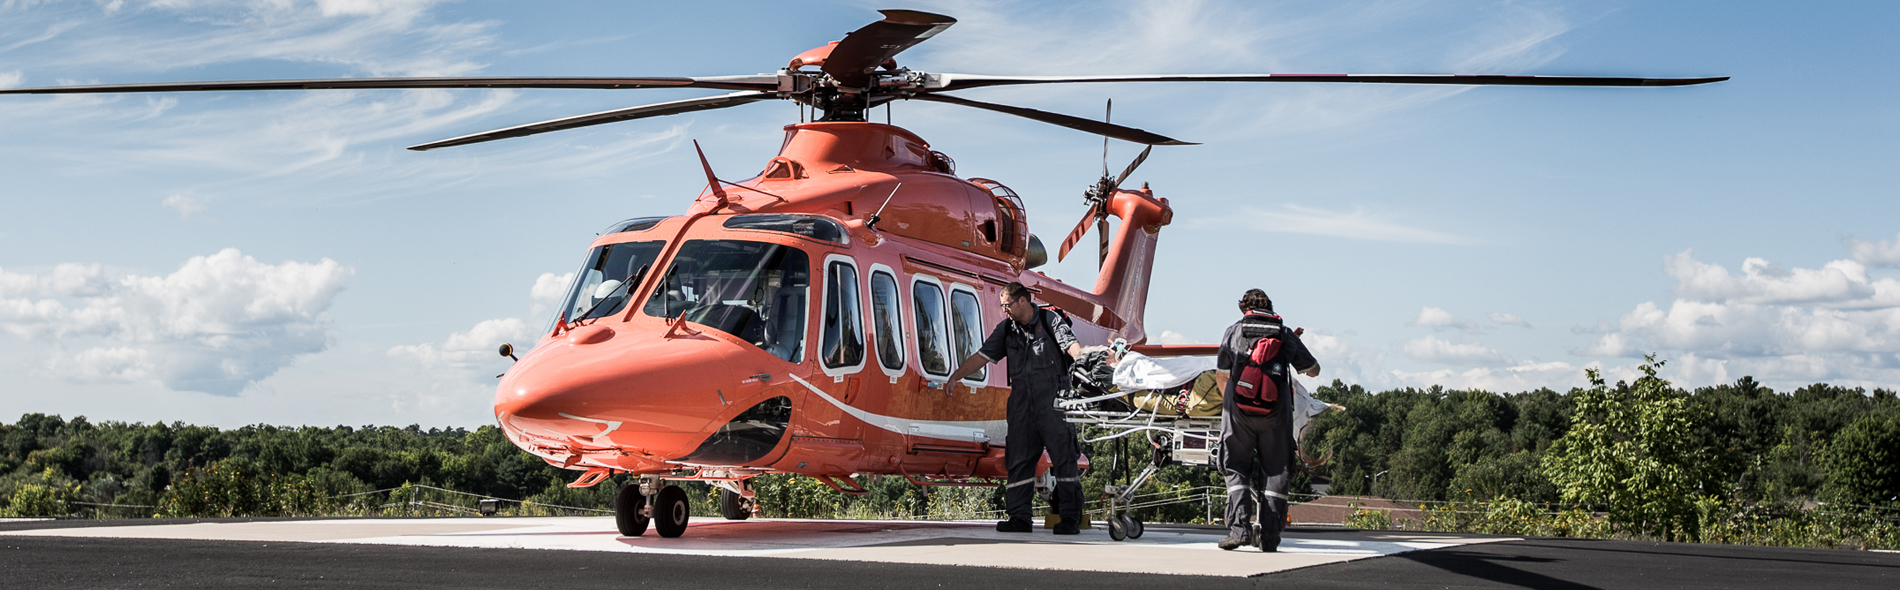 A group of paramedics waking towards an Ornge helicopter